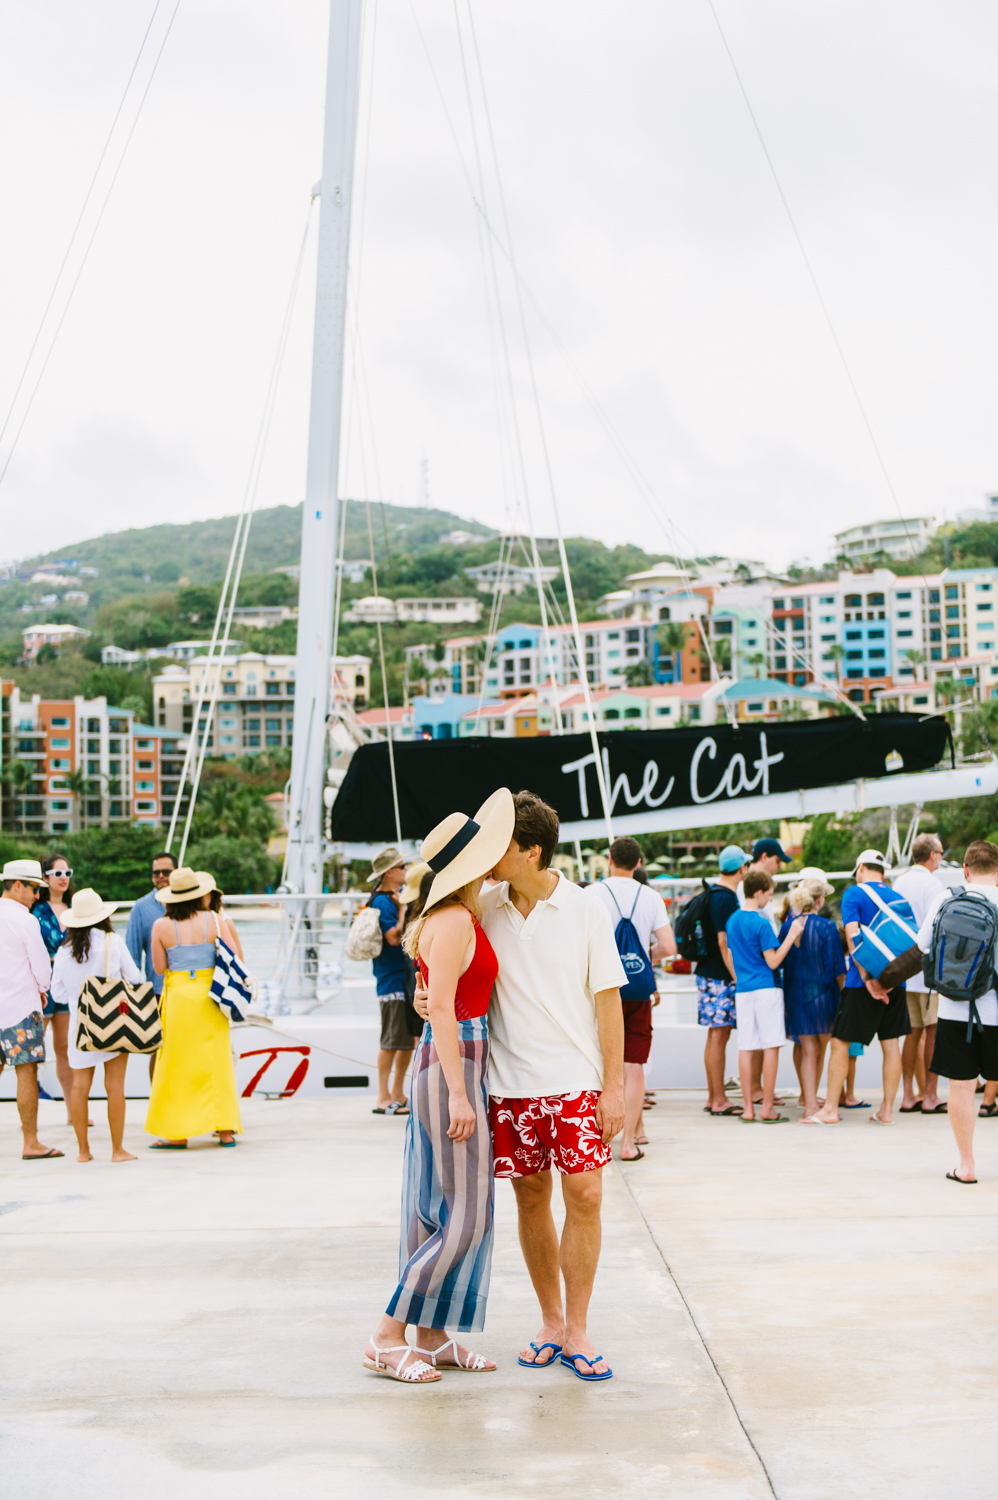 St.Thomas.FrenchmansReef.Wedding.Leme13.jpg